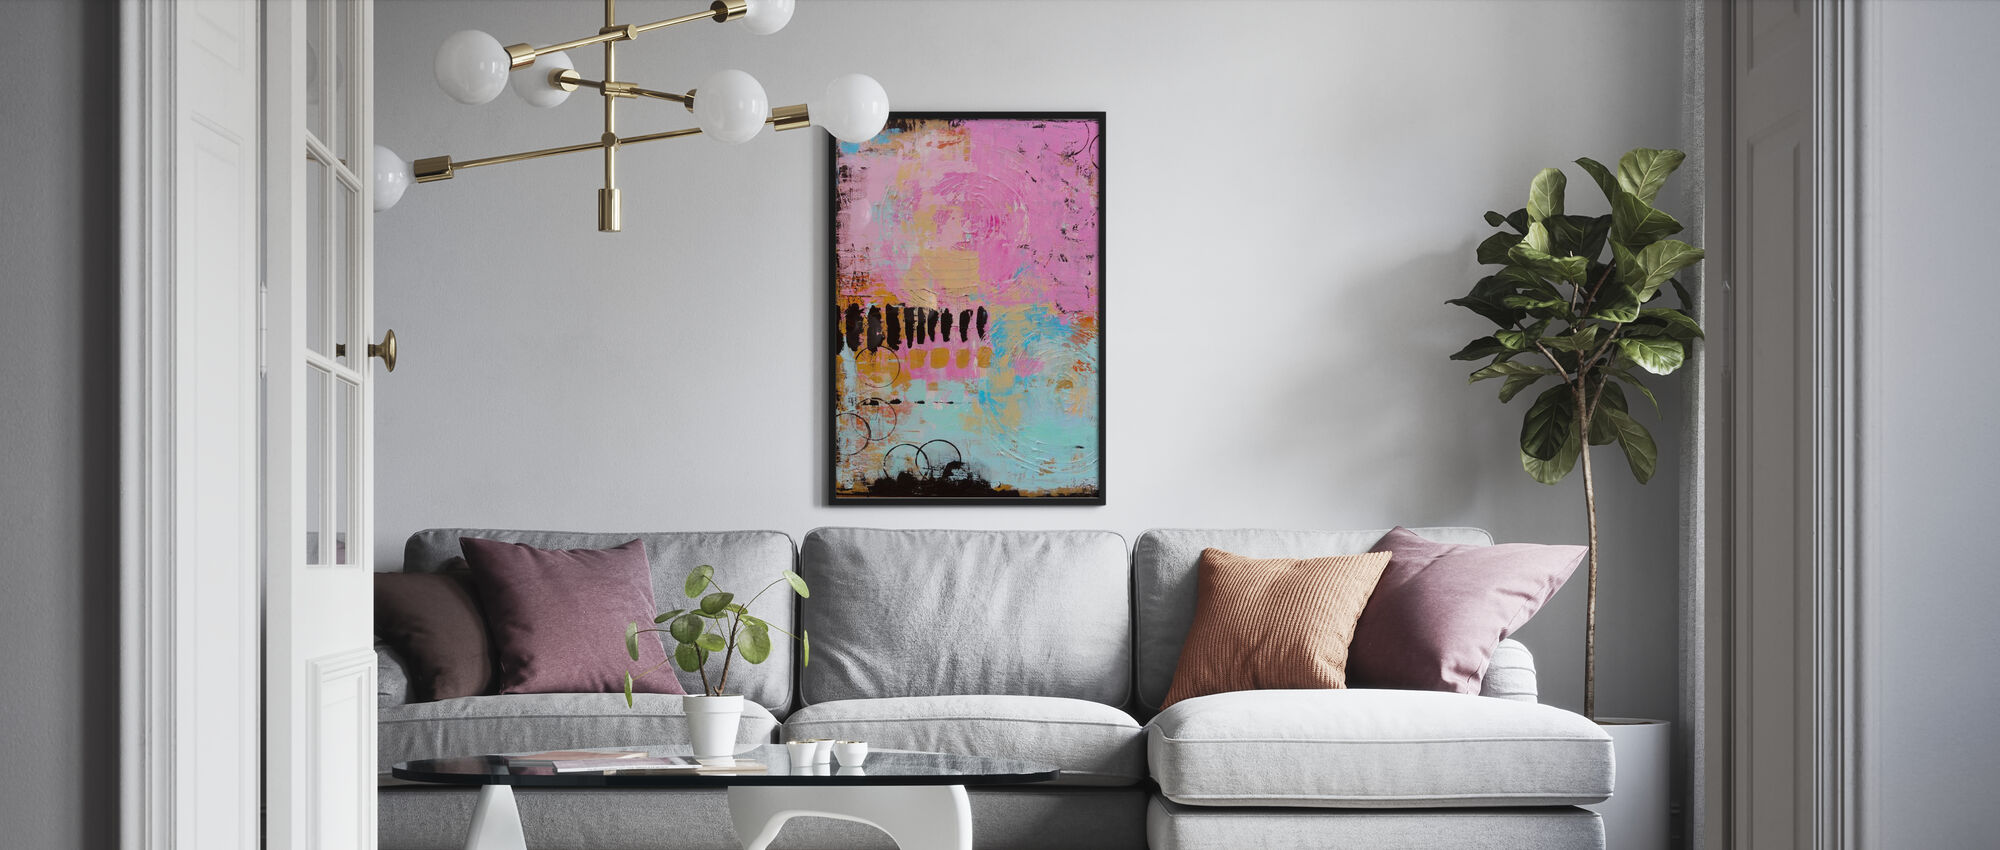 Abstract Cordero - Poster - Living Room